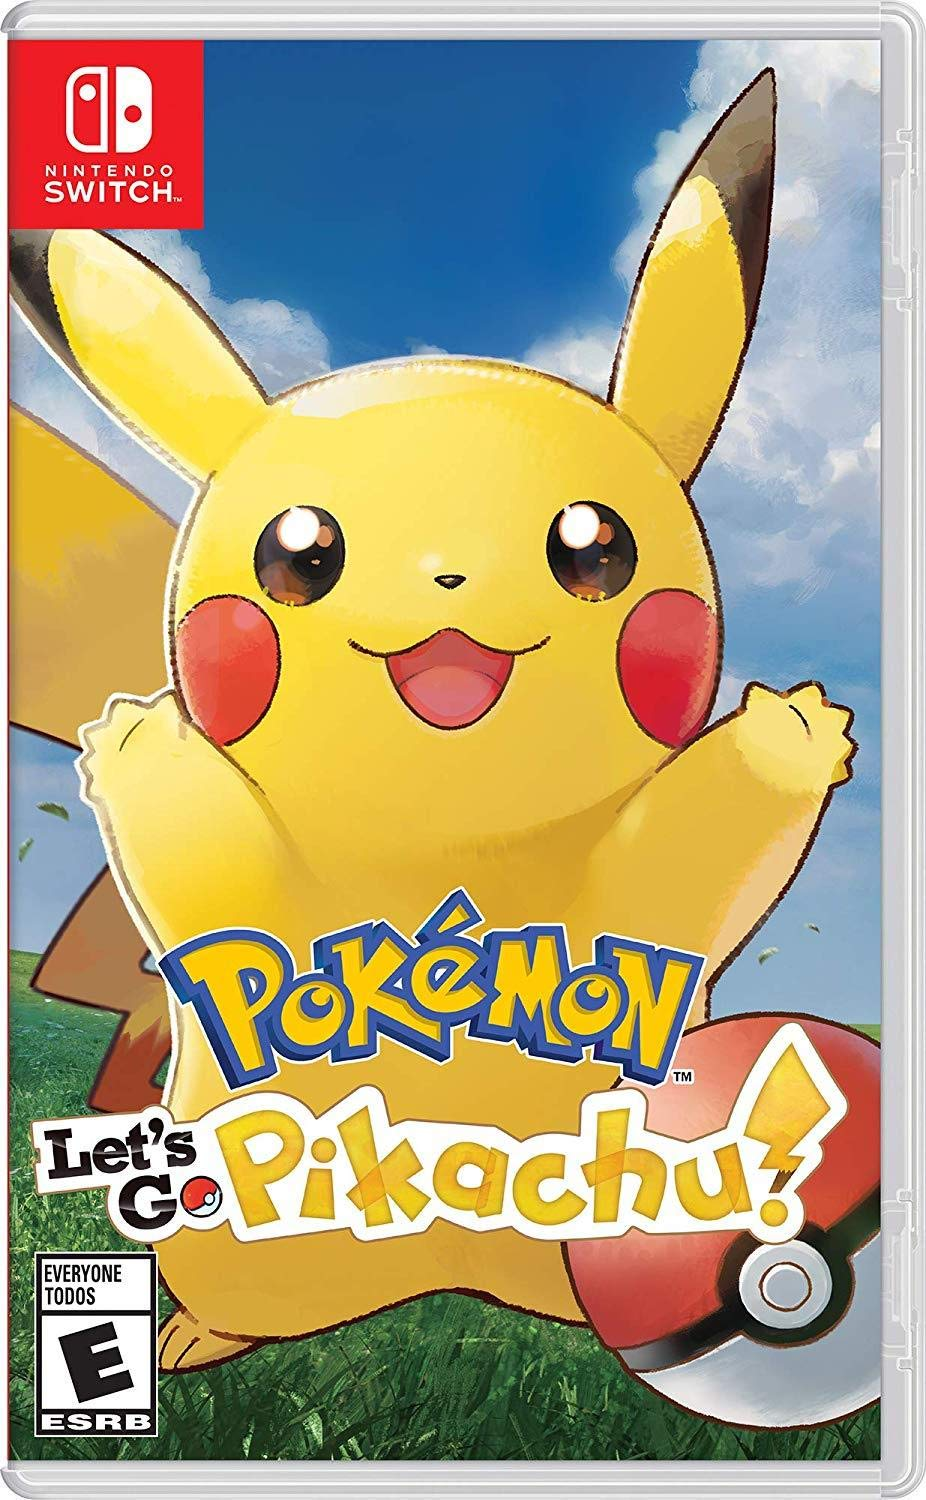 Pokemon Lets Go Pikachu for Nintendo Switch [USA]: Amazon.es: Nintendo of America: Cine y Series TV